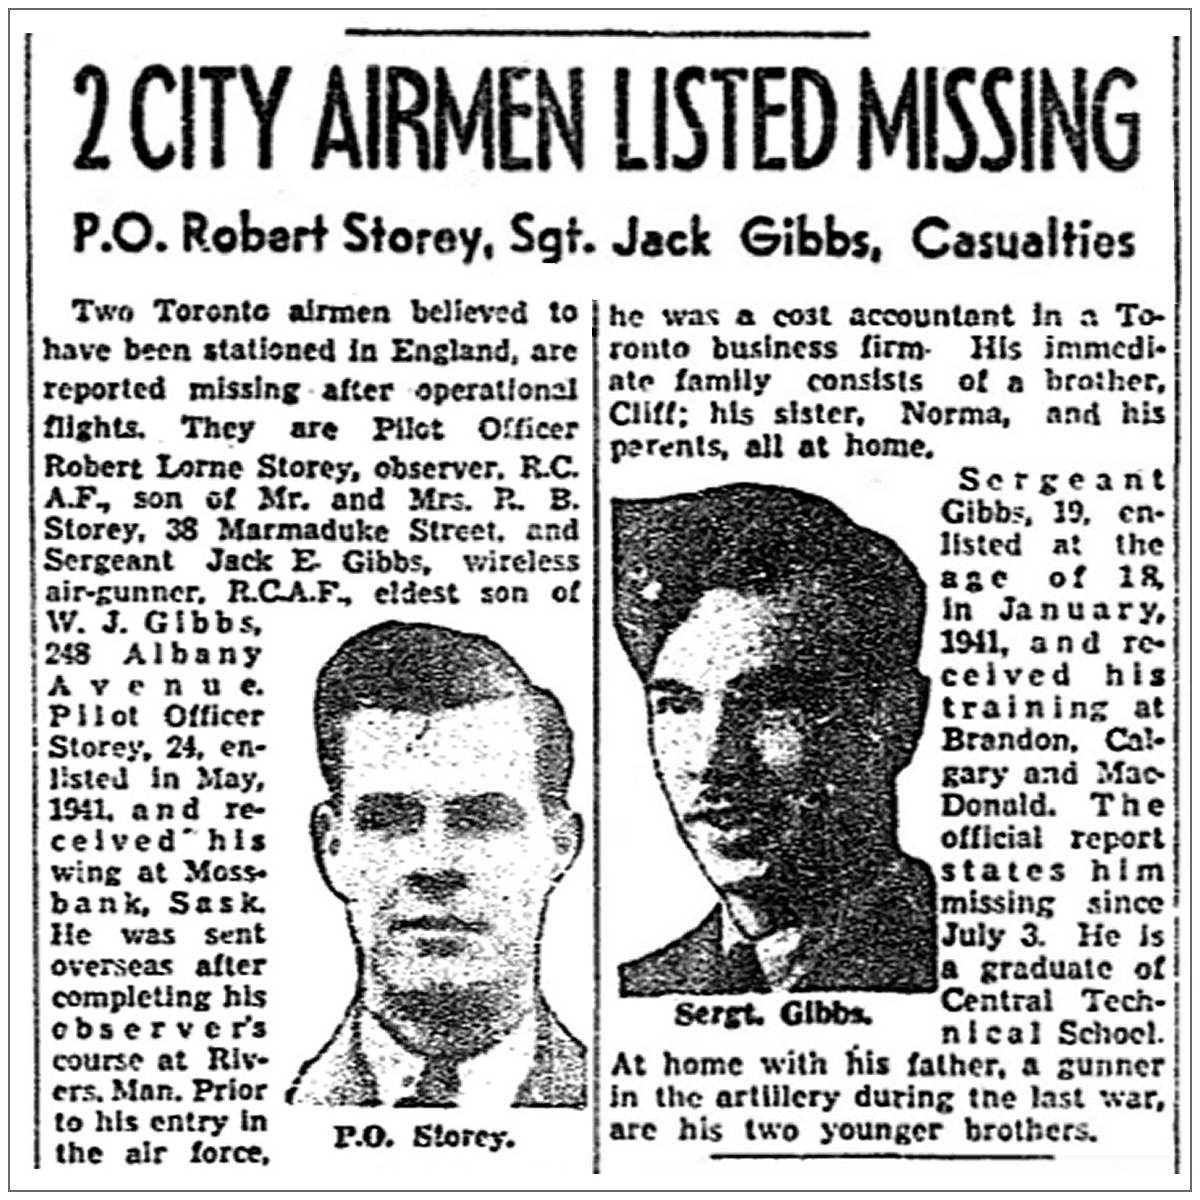 2 city airmen listed missing